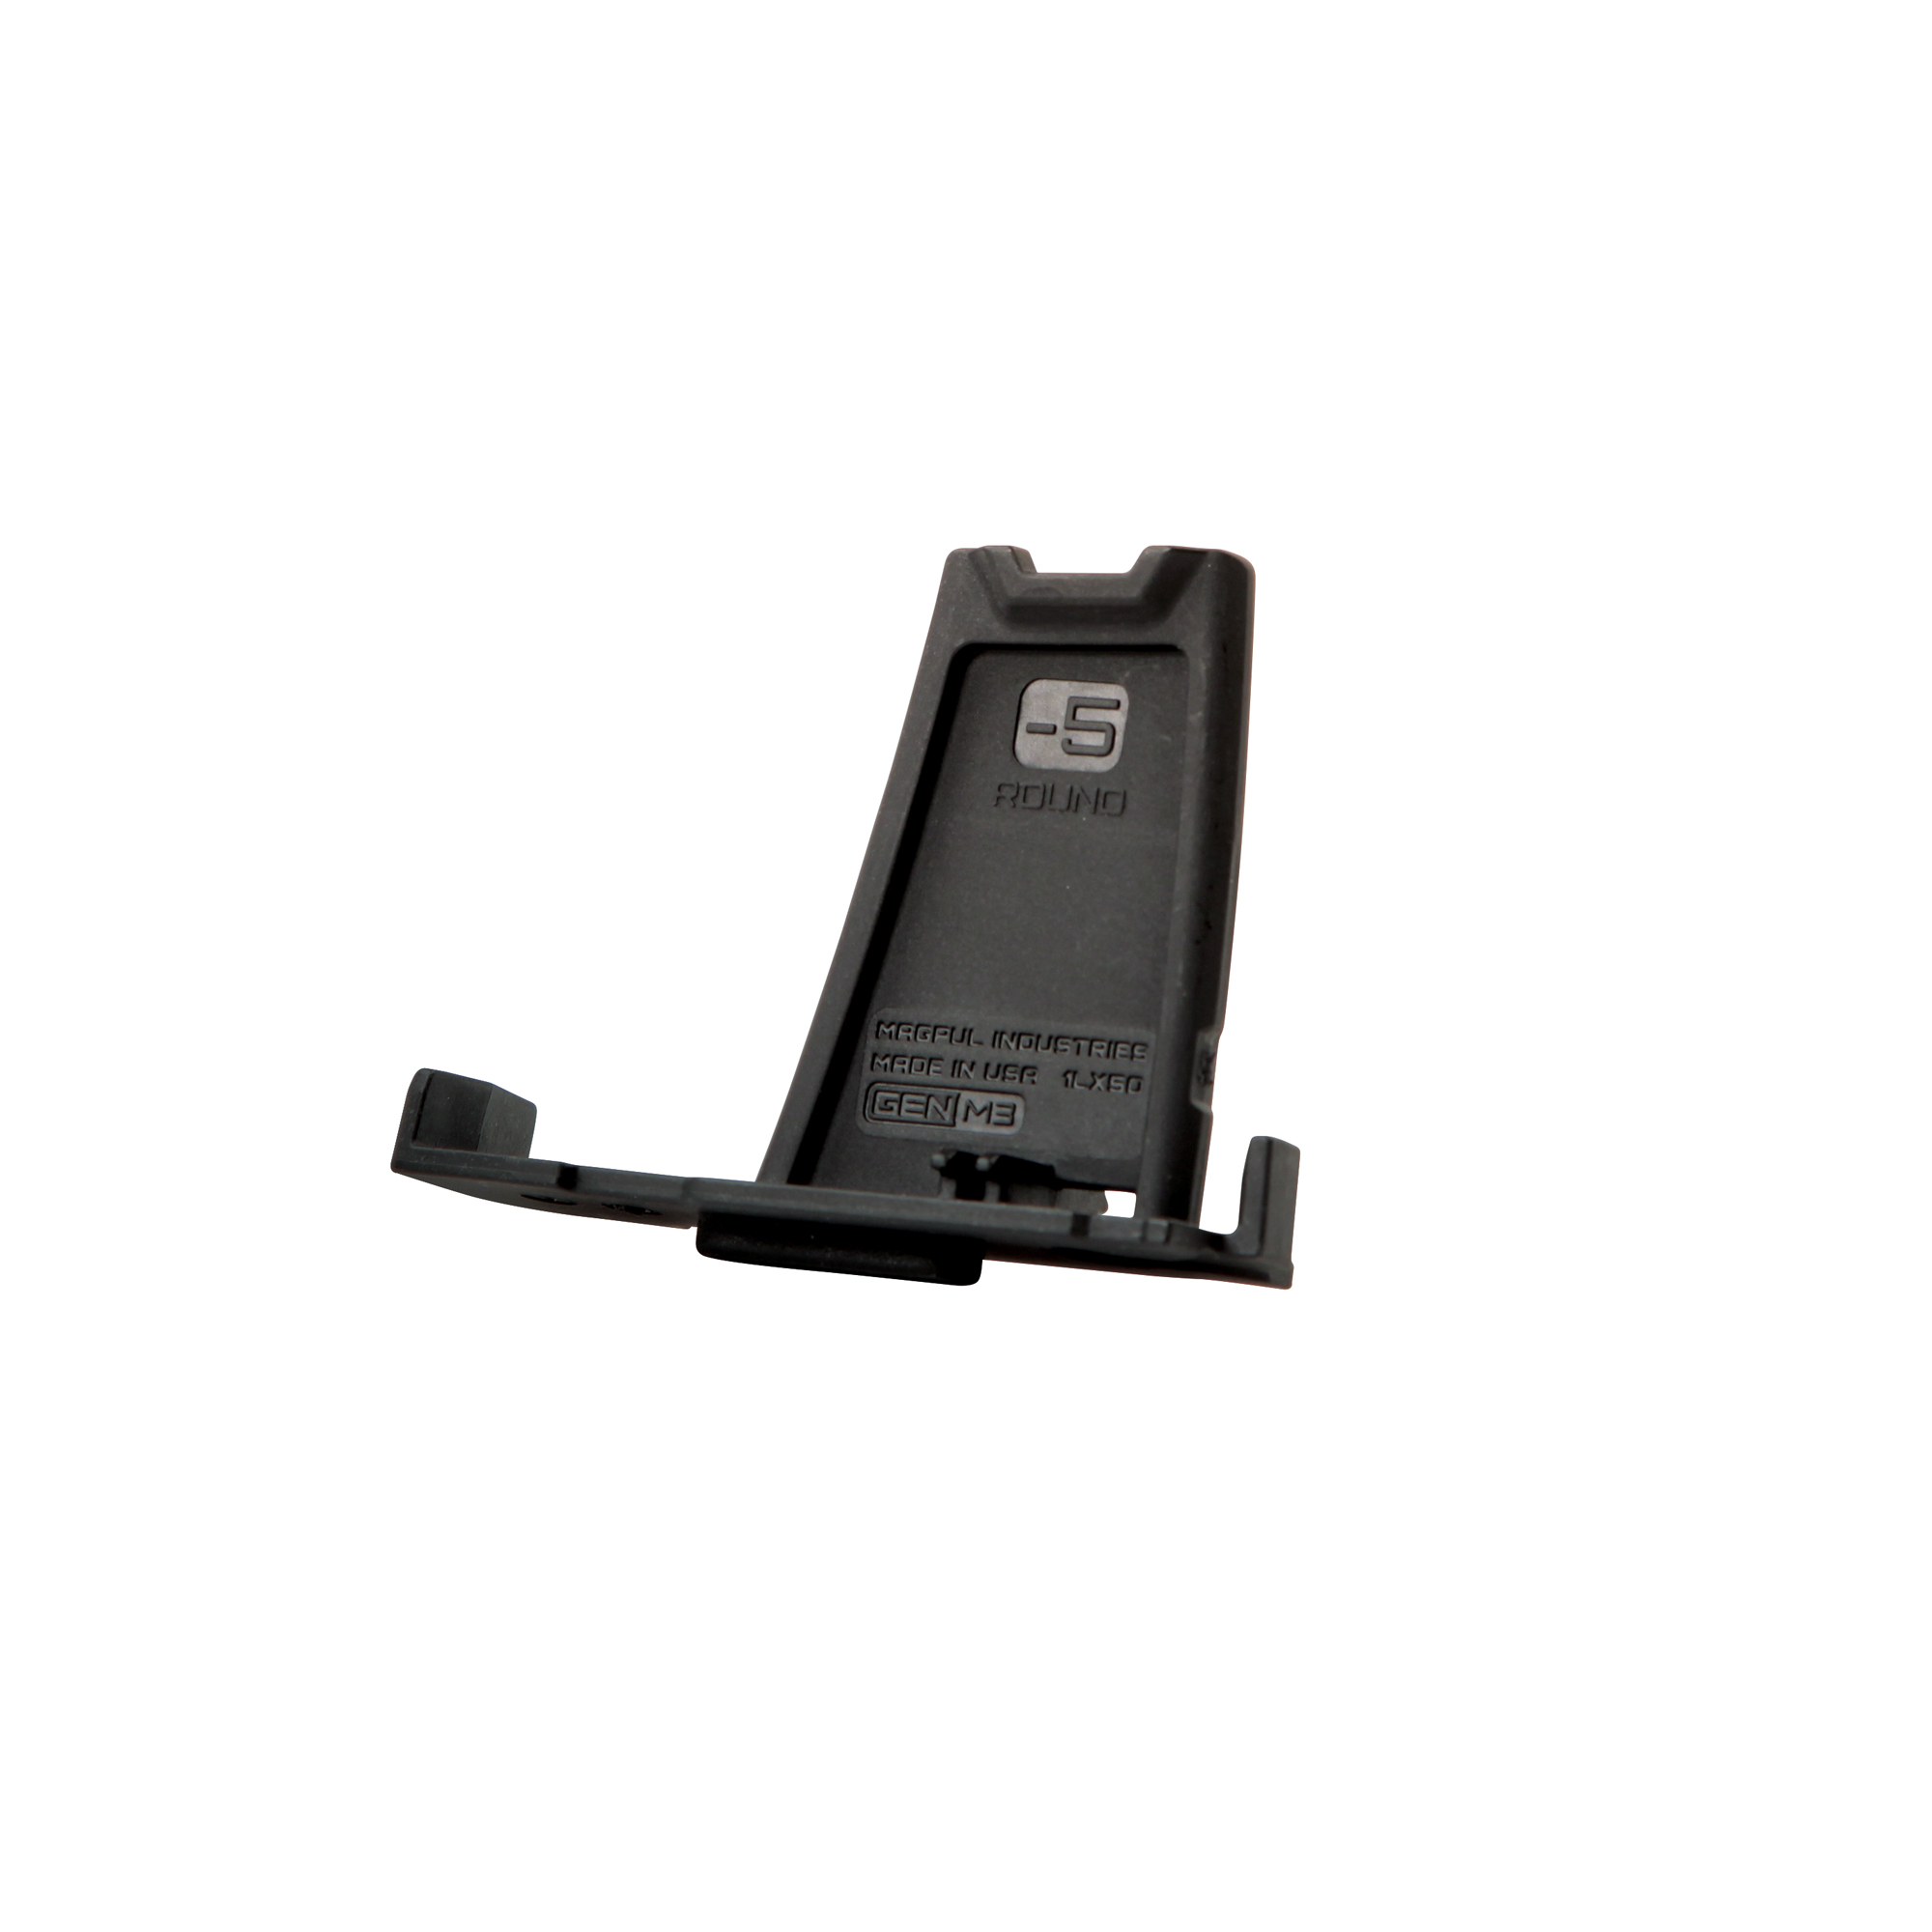 """The PMAG Minus 5 Round Limiter installs in 10"""" 20"""" or 25 round 7.62x51 LR/SR GEN M3 PMAG bodies"""" reducing the magazine capacity by five rounds. Designed for sporting and hunting applications"""" installation of the Limiter is simple"""" tool-less"""" and requires no permanent modification of the magazine body."""